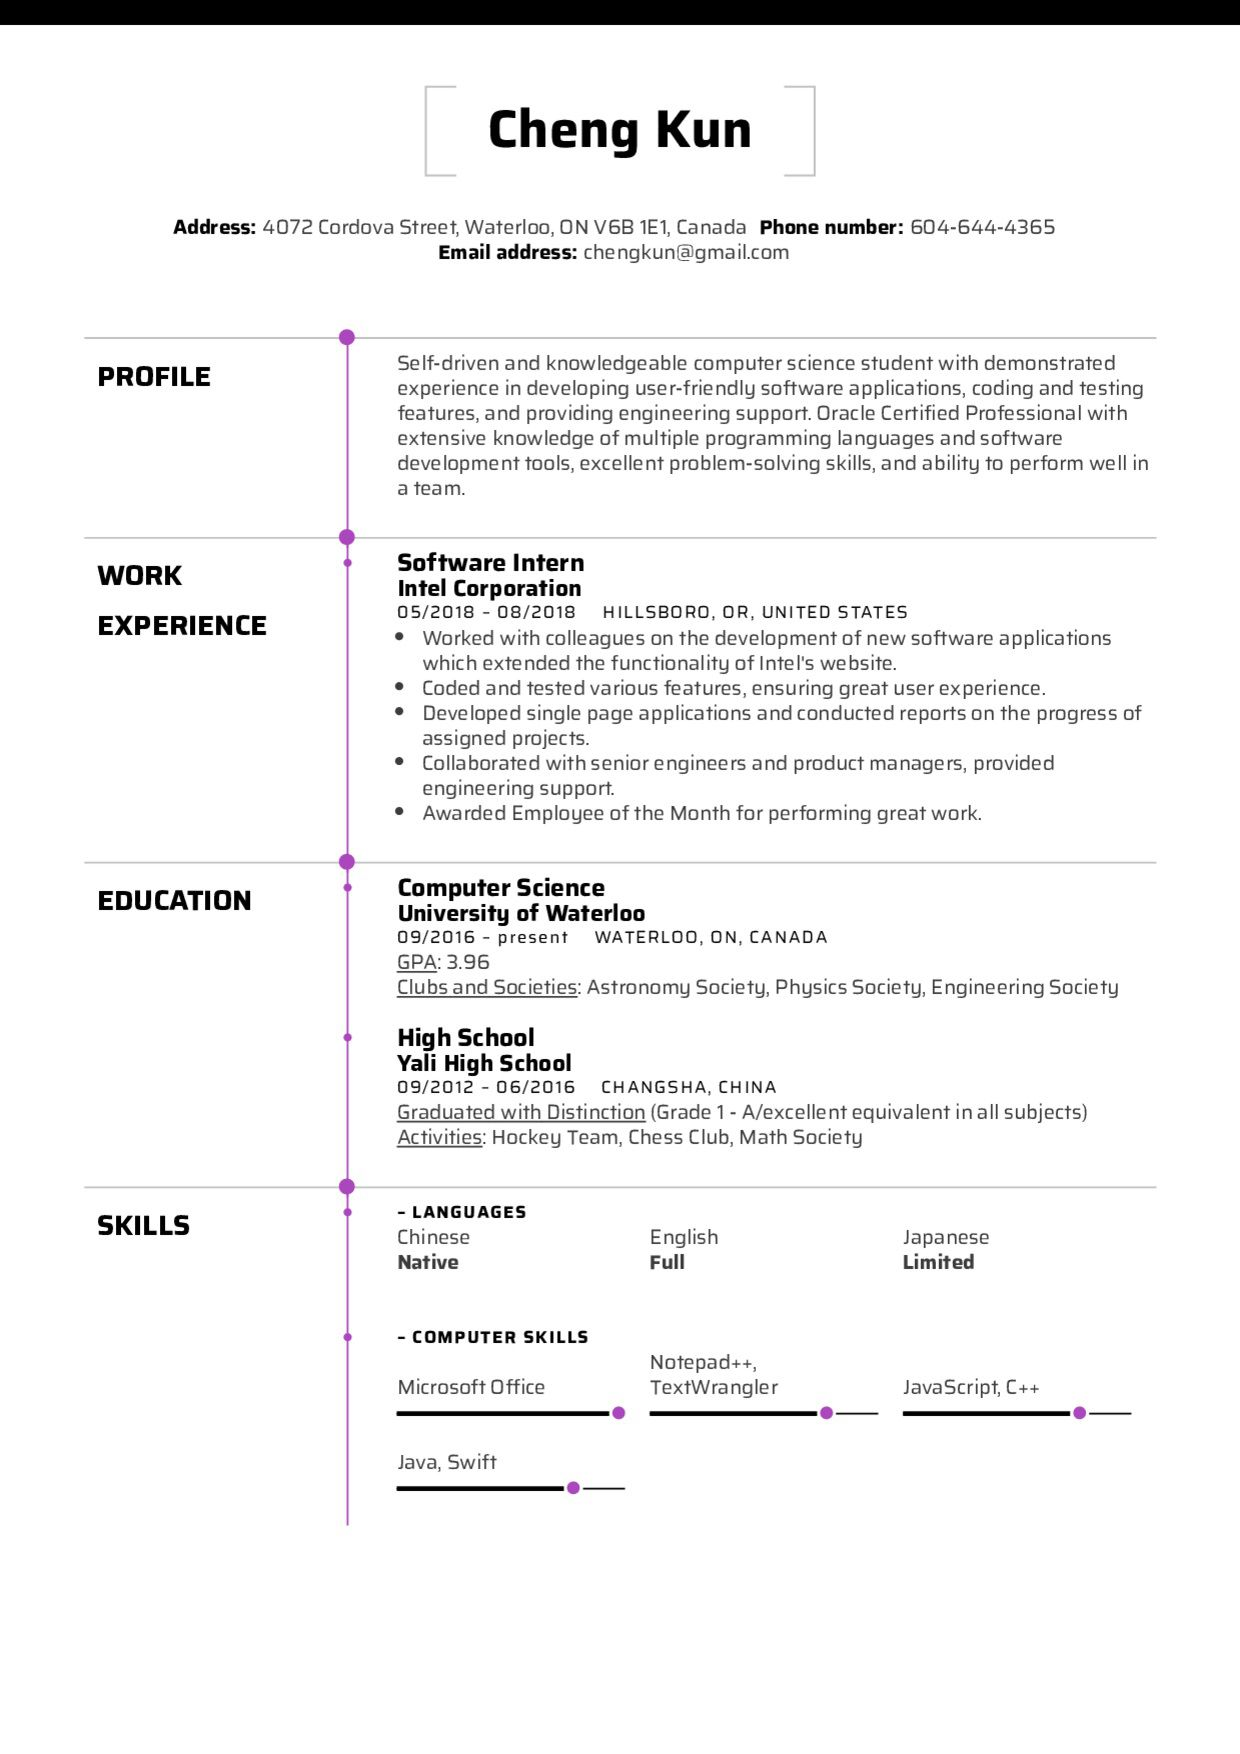 006 Exceptional Resume Template For Student Highest Clarity  Students High School Internship Google Doc Openoffice Free DownloadFull